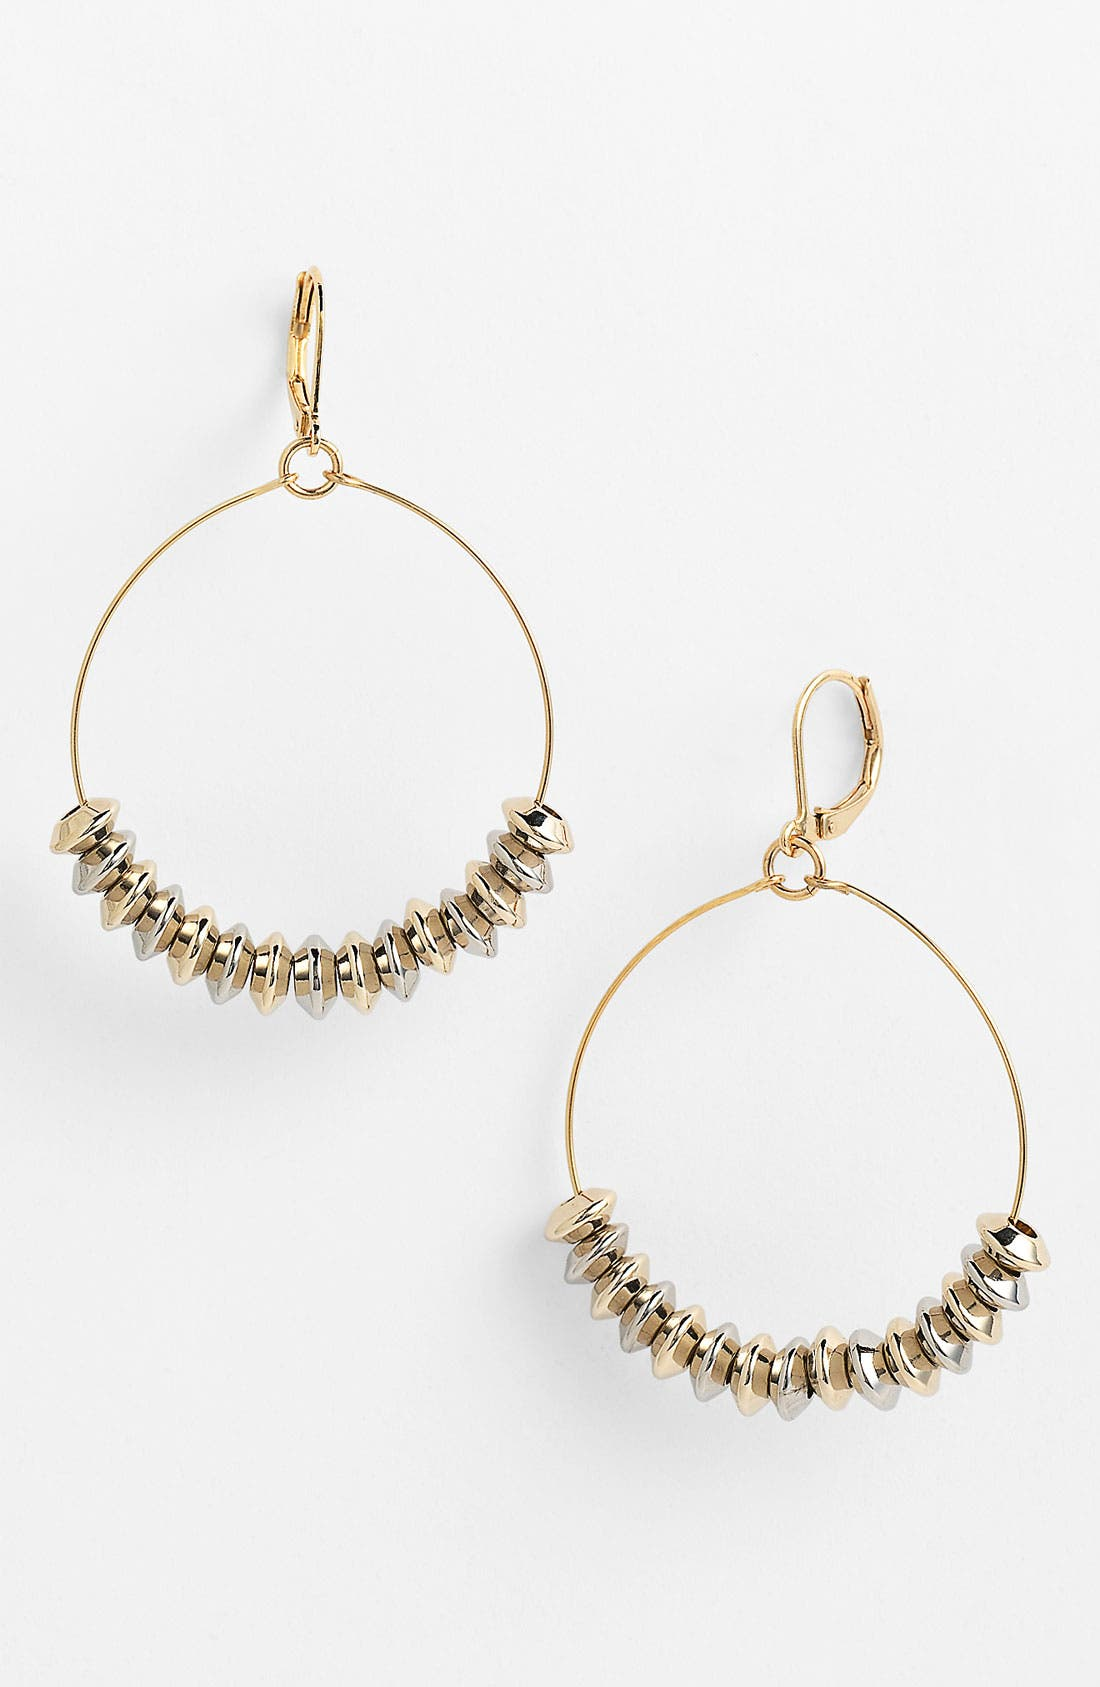 Main Image - Nordstrom 'Wisteria' Frontal Hoop Earrings